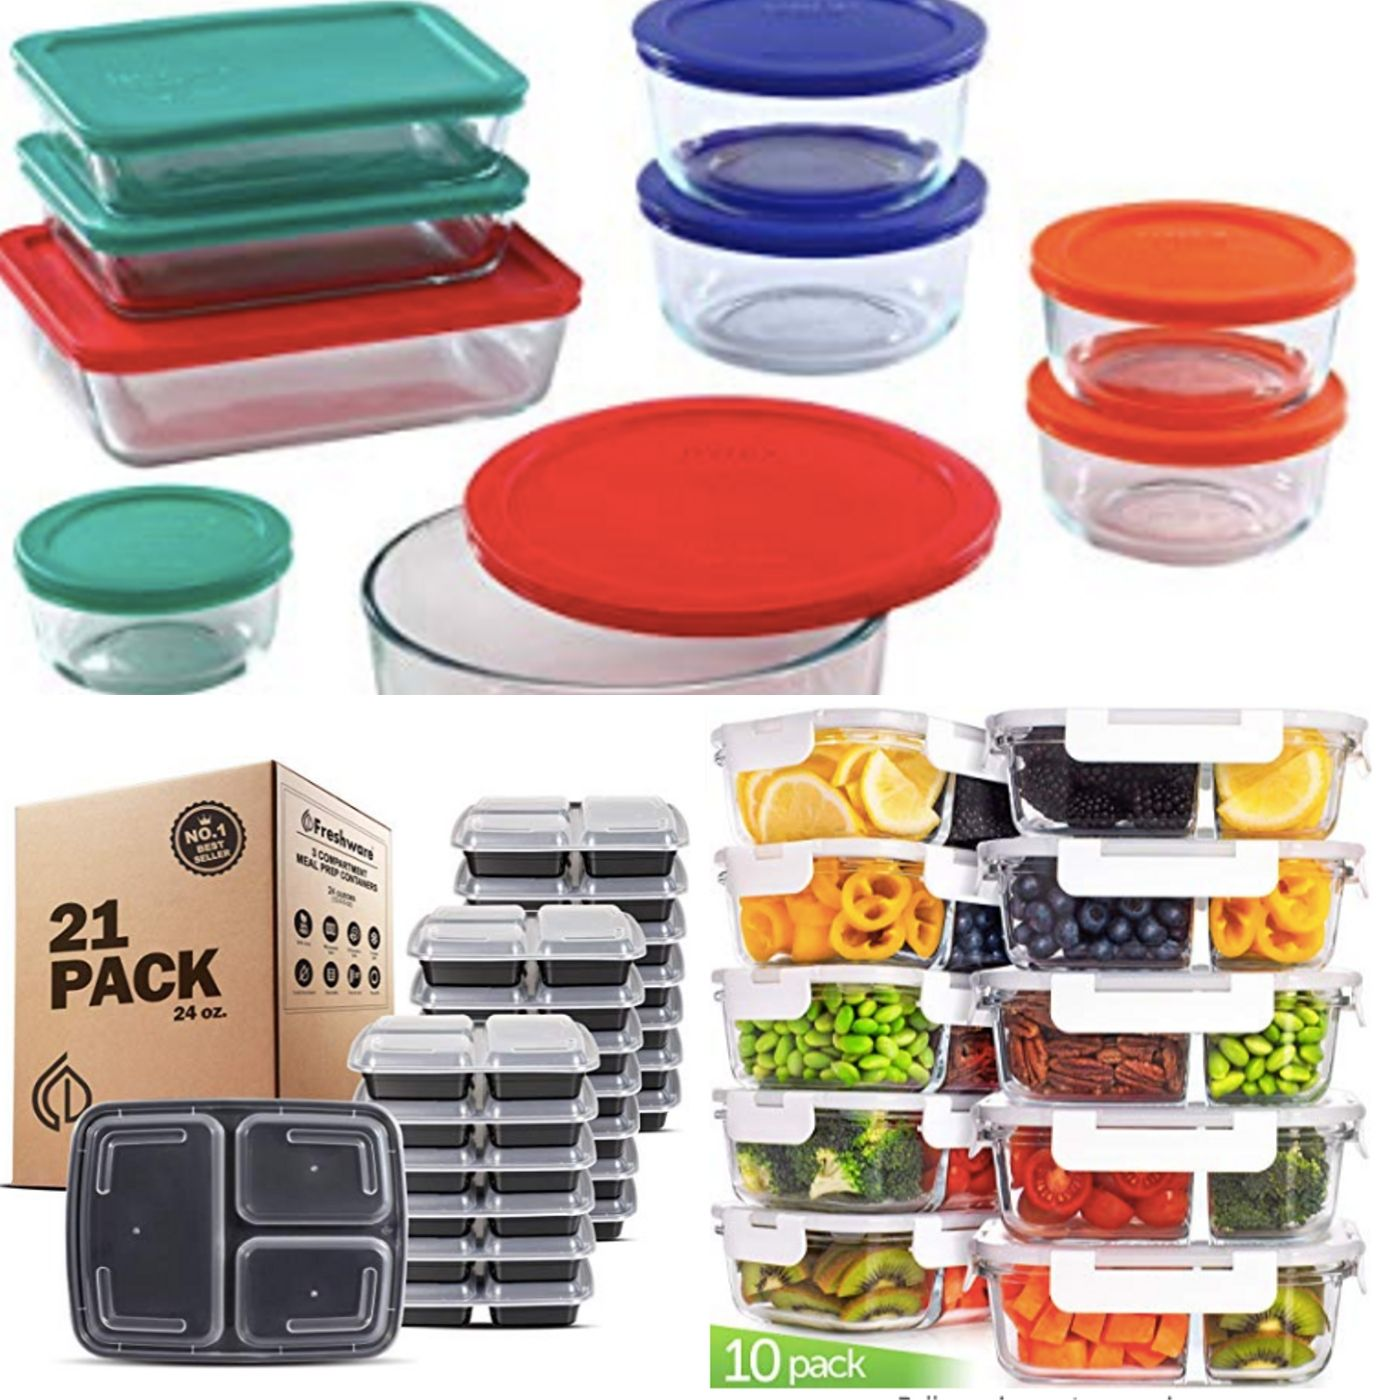 keto lunch meal prep containers.jpg